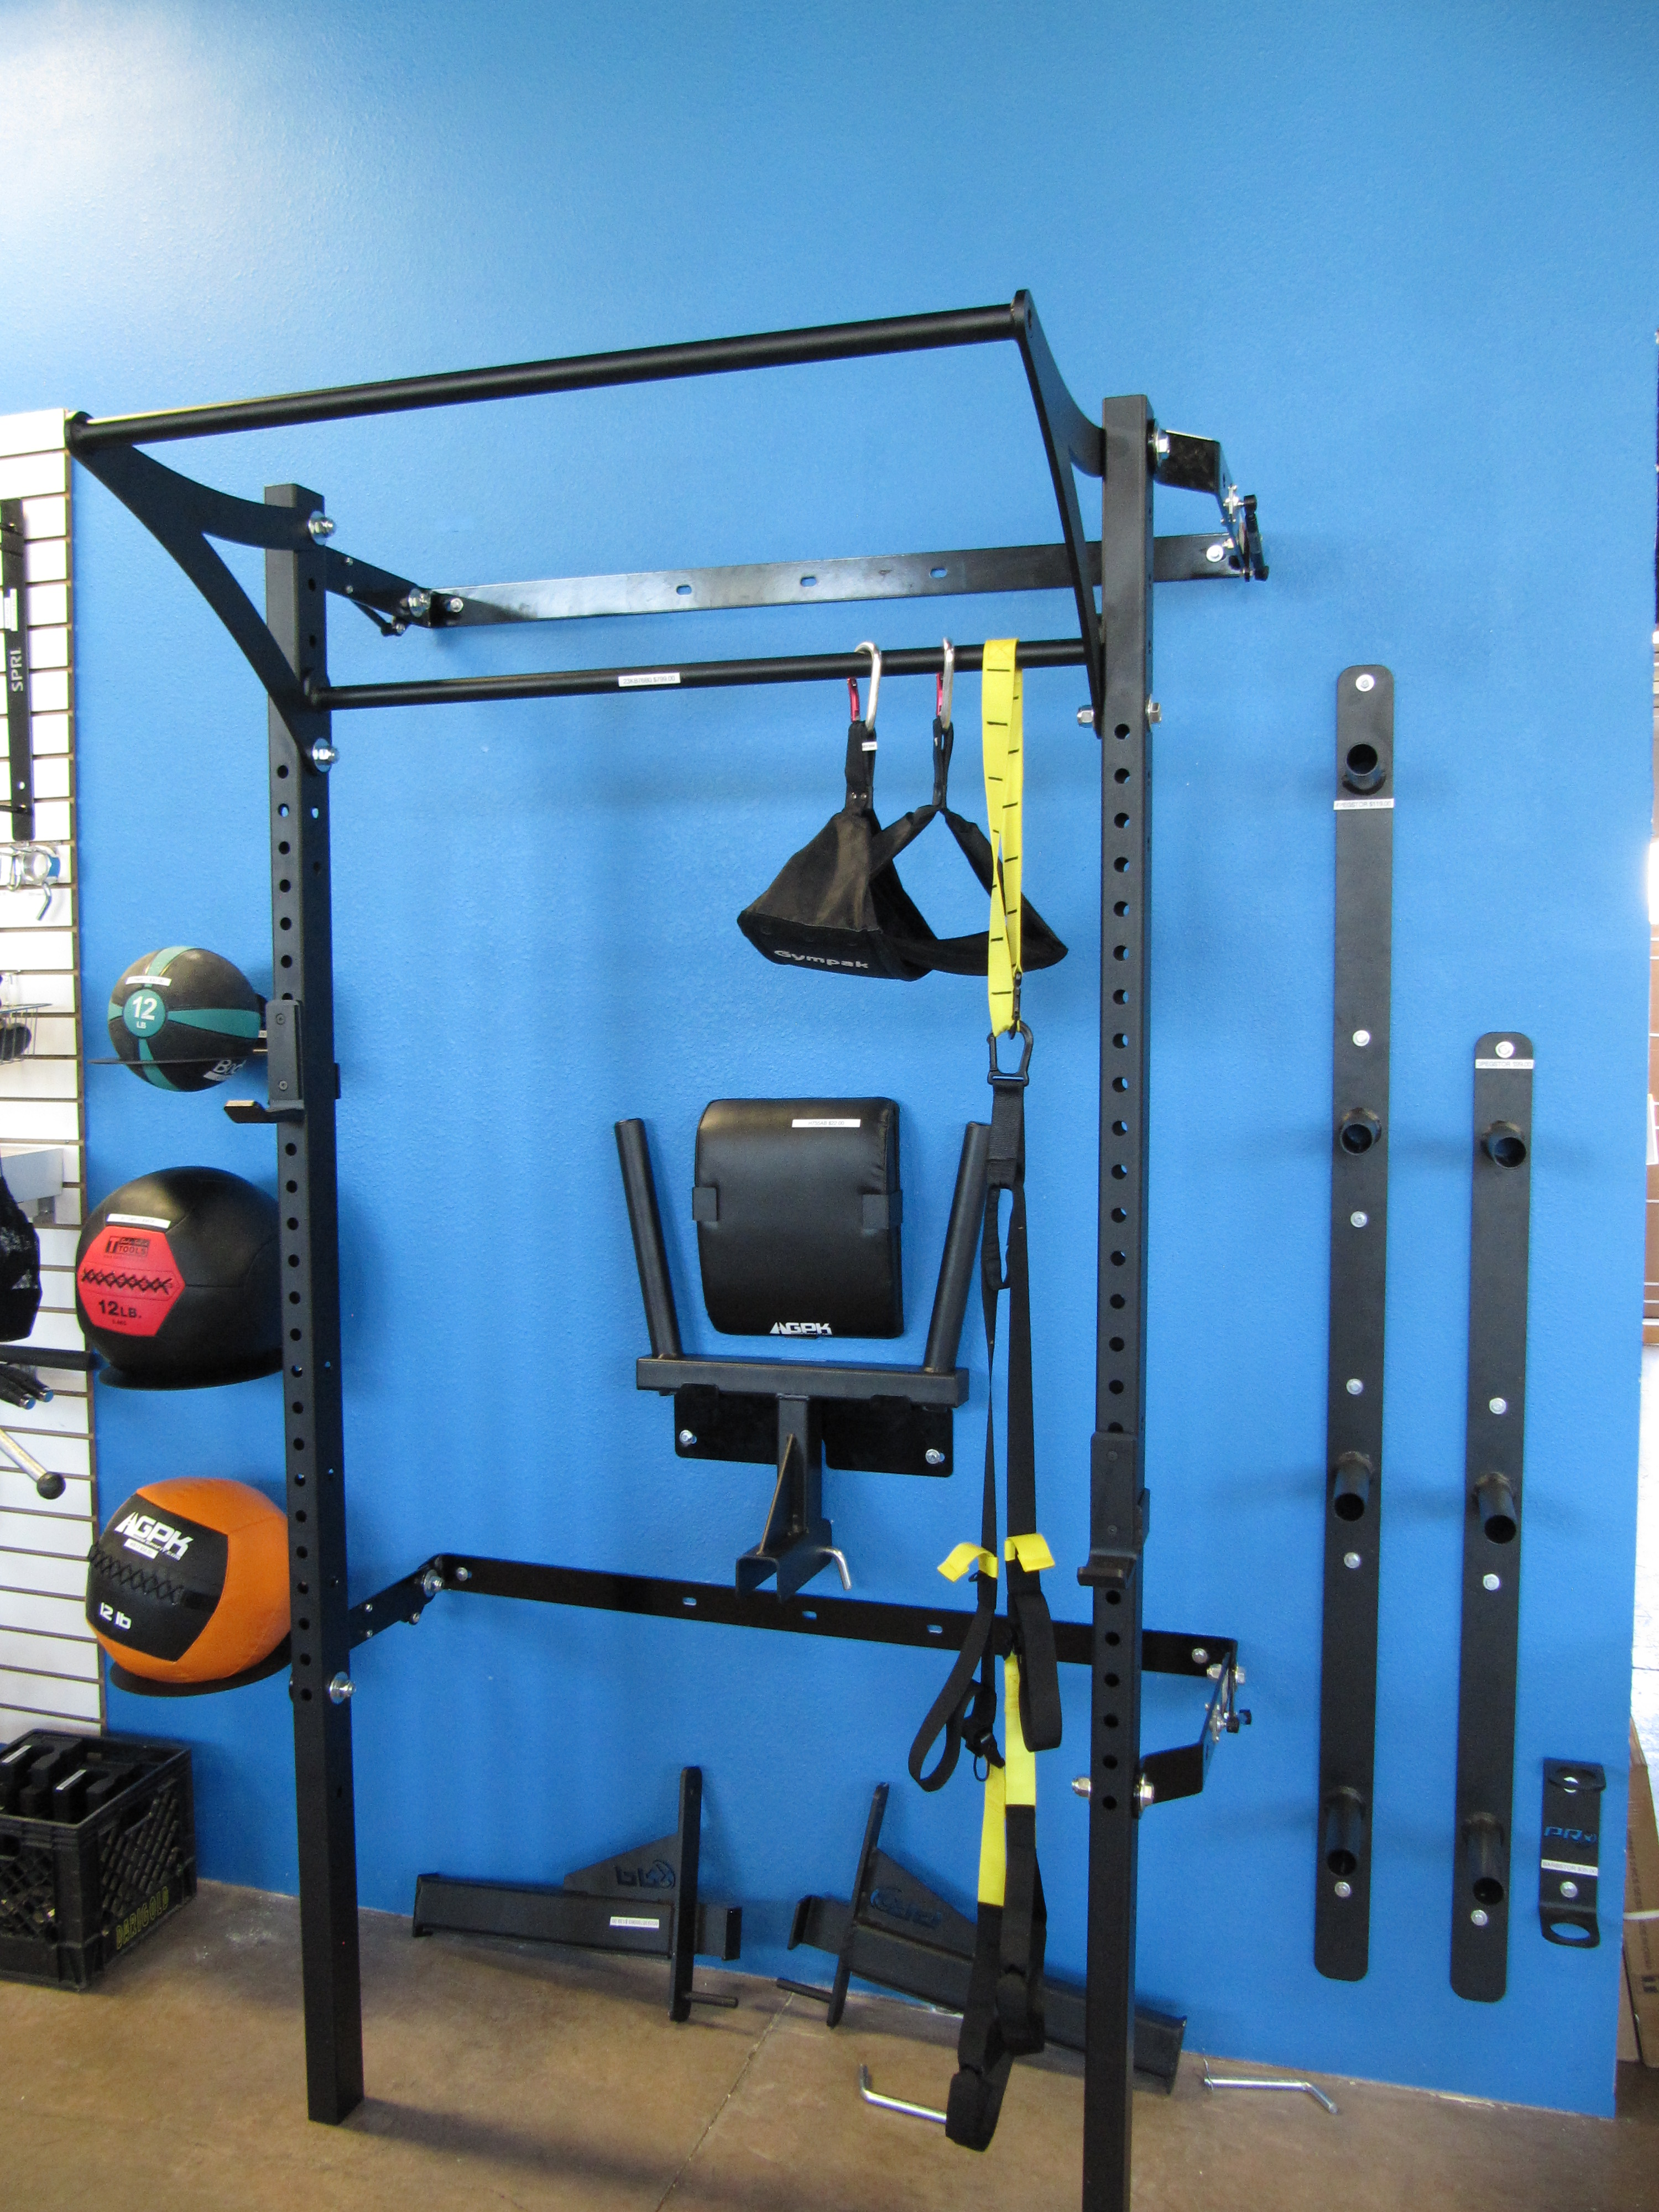 Prx Profile Rack With Kipping Bar 799 00